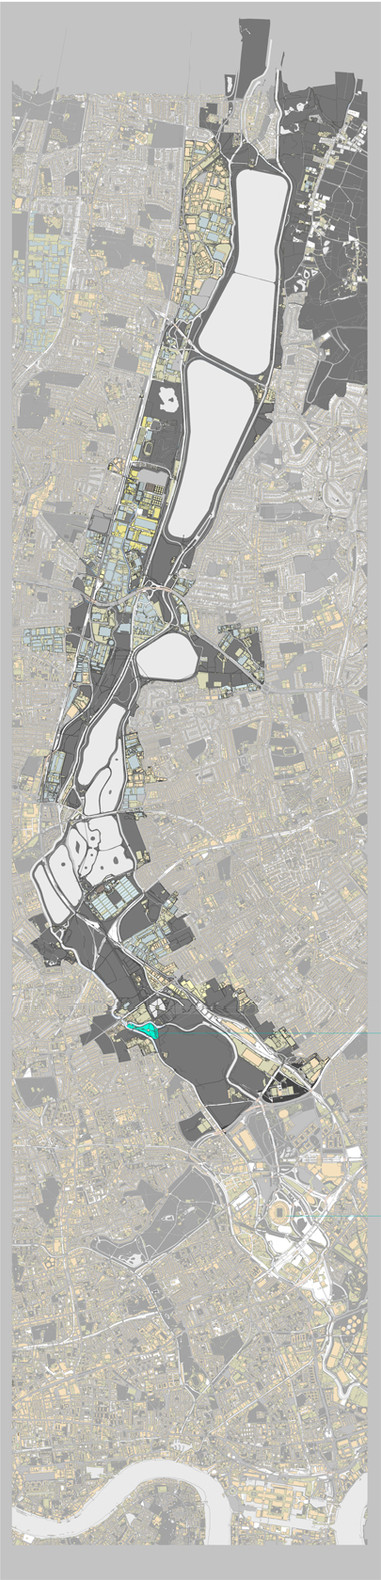 Y2 Architecture Project 2 - Site Map [Lee Valley, London]